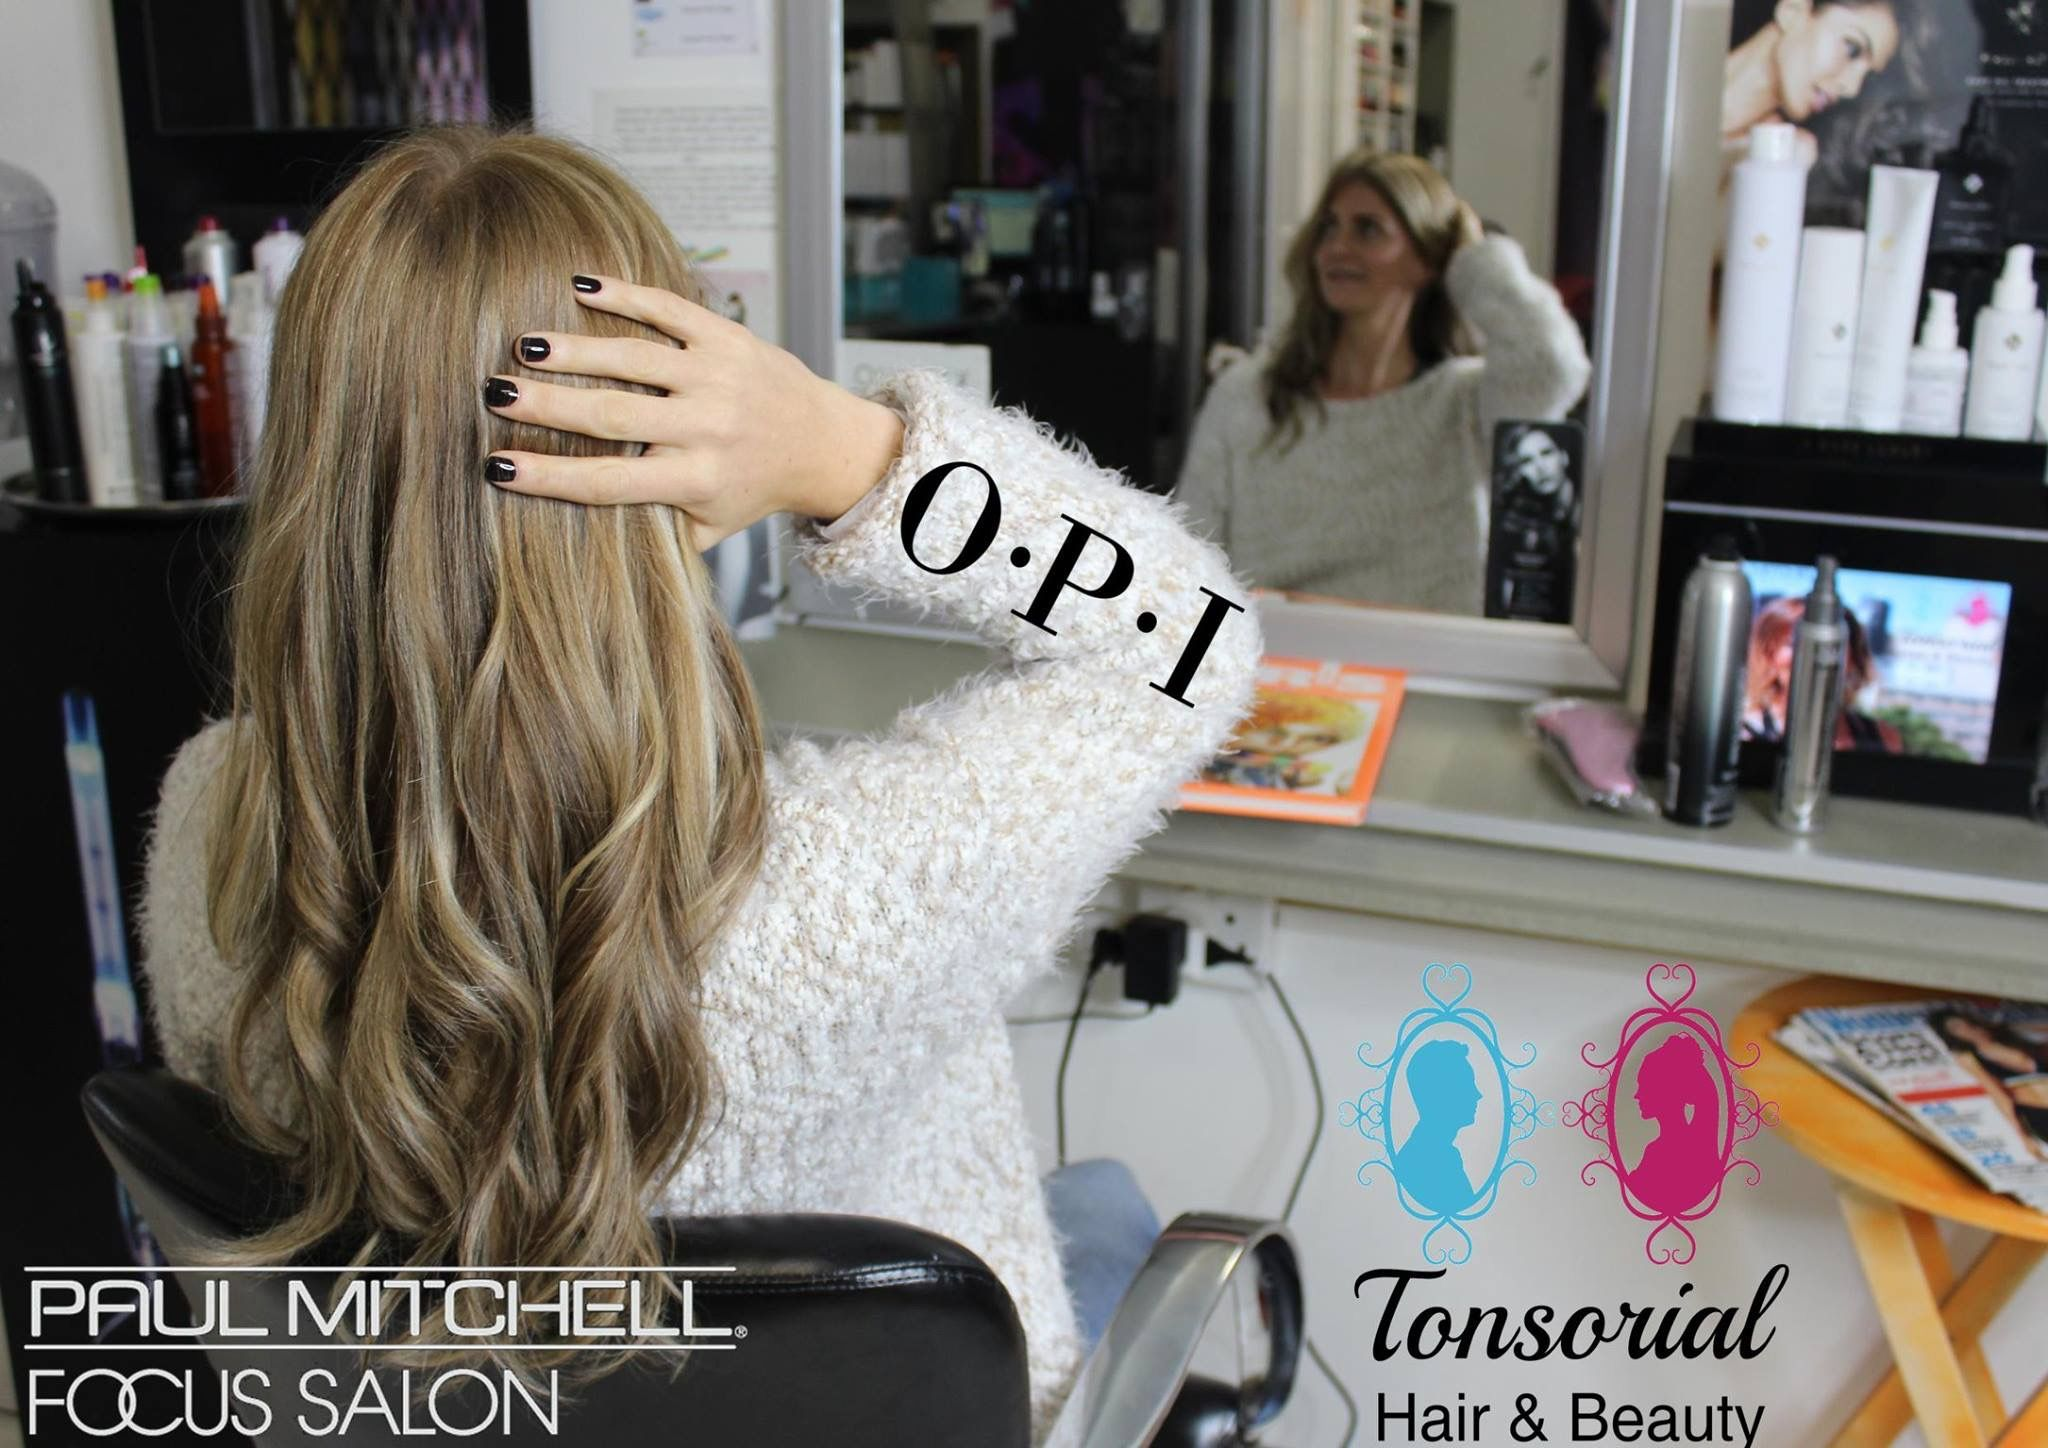 Sometimes losing yourself means finding yourself  #bokaap #captown #tonsorialhair #capetownsalon #paulmitchell #opi #thenailpeople #livebeautifully #haircare #blonde #manicure #stylesquad #seniorstylist #hairbytaurique #nailsbynielfah #summerready #throwbackthursday #tbt #bestofboth #dobiggerthings #capetowncity #iheartpm #foreverblonde #glamour #colourmecrazy #hairbrained #behindthechair #transformationthursday #olaplex #modernsalon